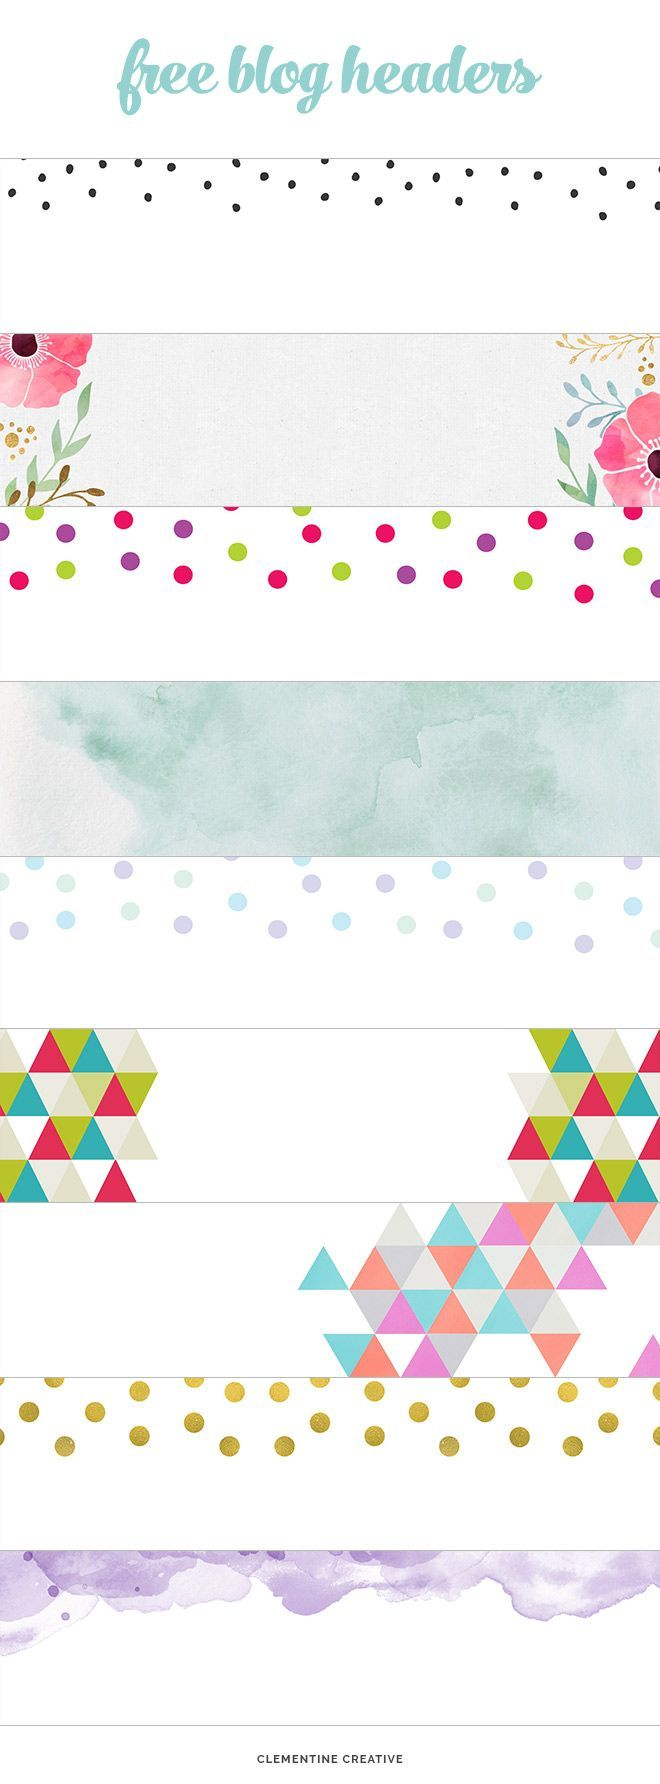 free creative blog headers - from watercolour to gold dots (scheduled via http://www.tailwindapp.com?utm_source=pinterest&utm_medium=twpin&utm_content=post24482856&utm_campaign=scheduler_attribution)